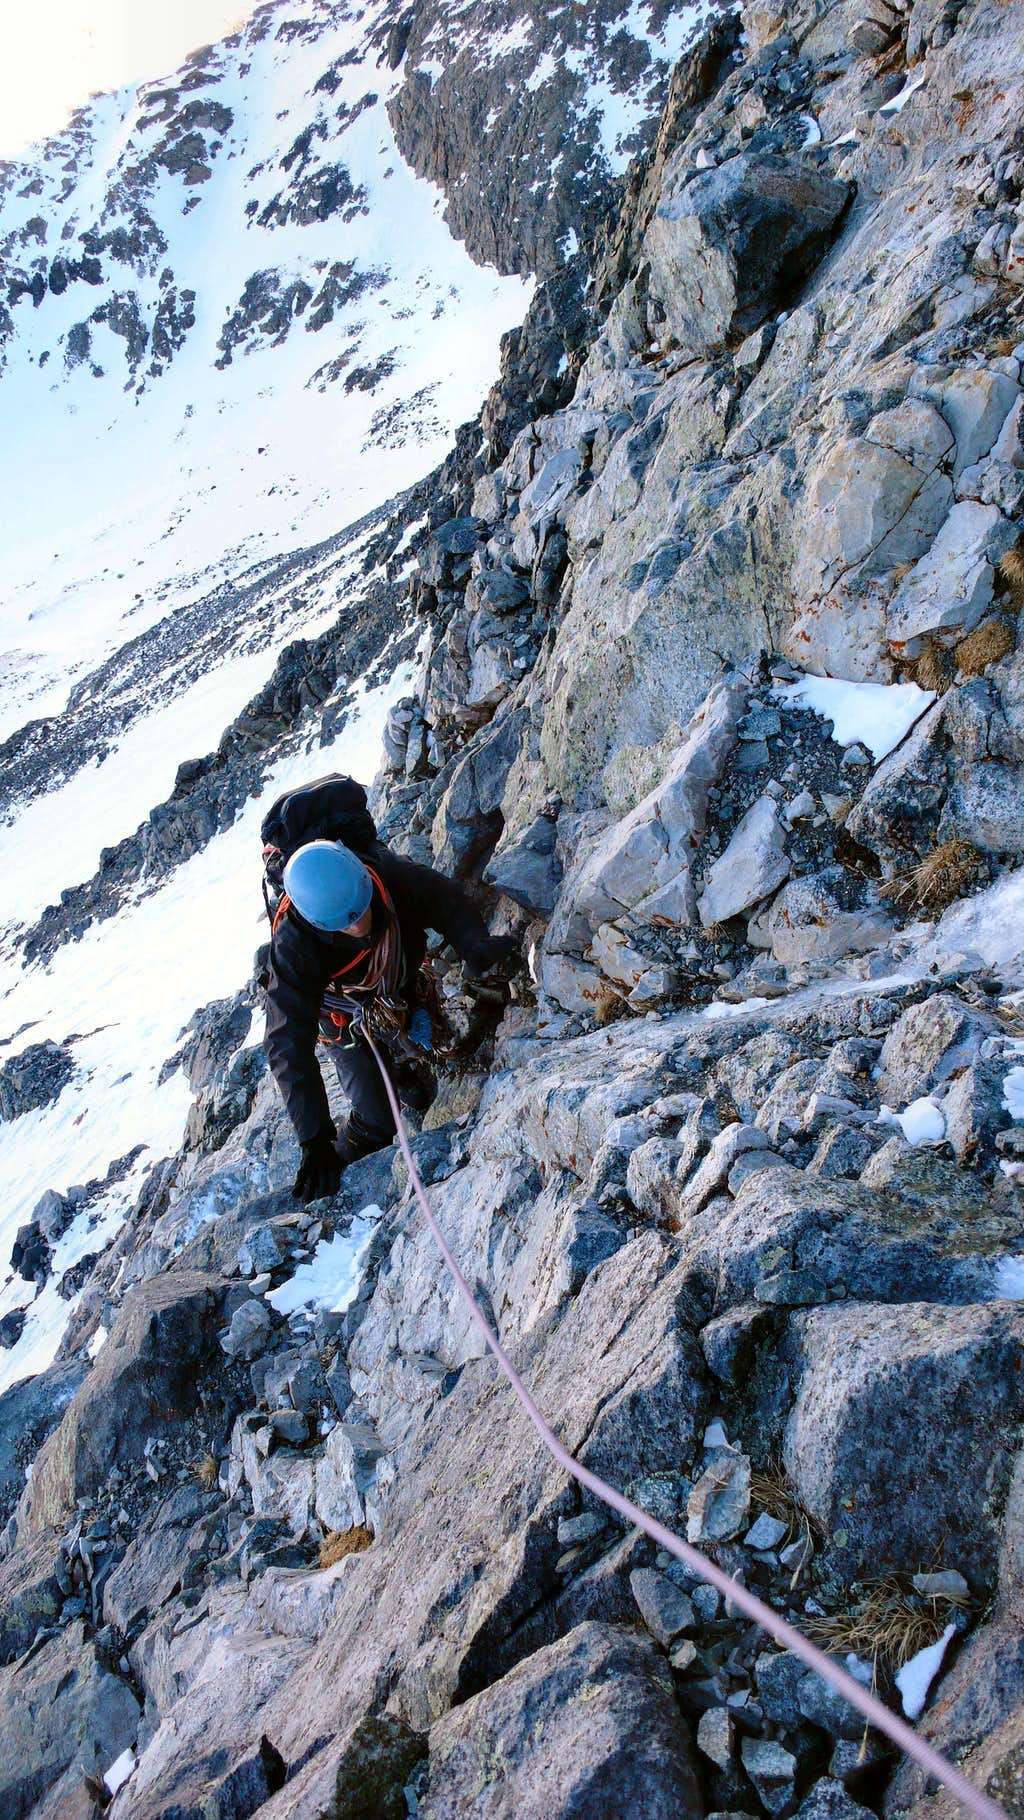 Low on Little Bear's NW Face